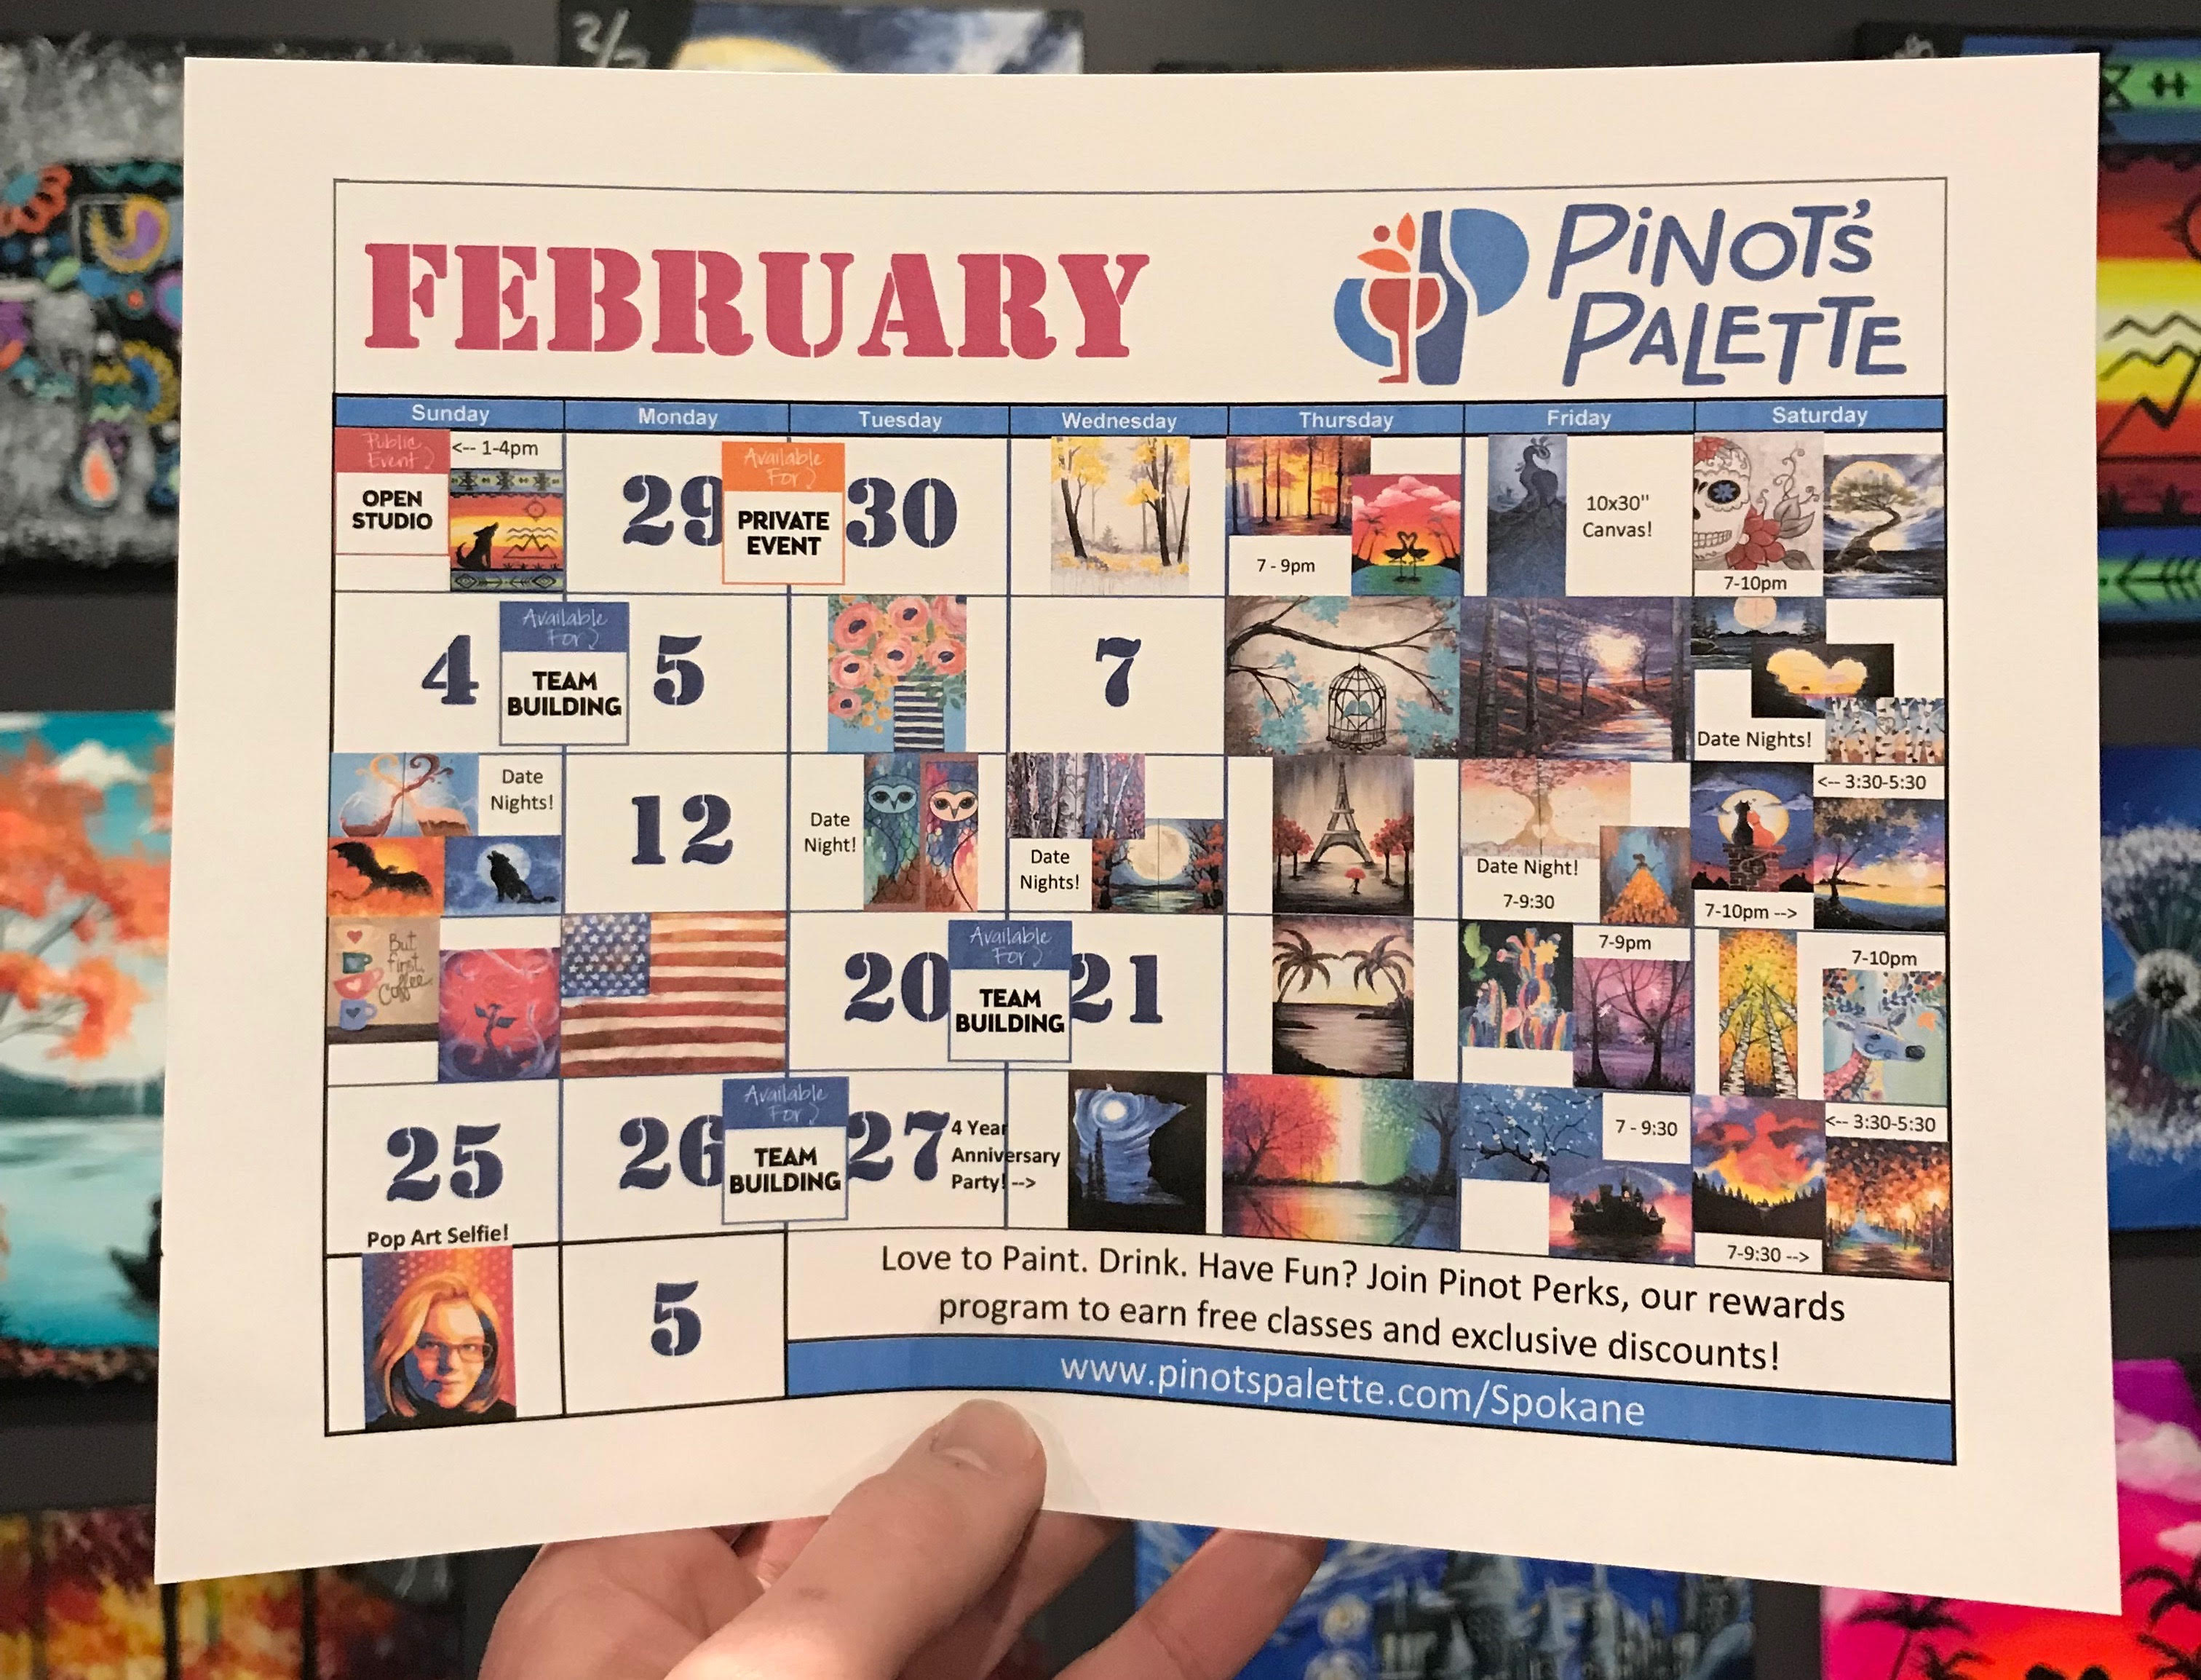 Fall In Love With Pinot's Palette This February